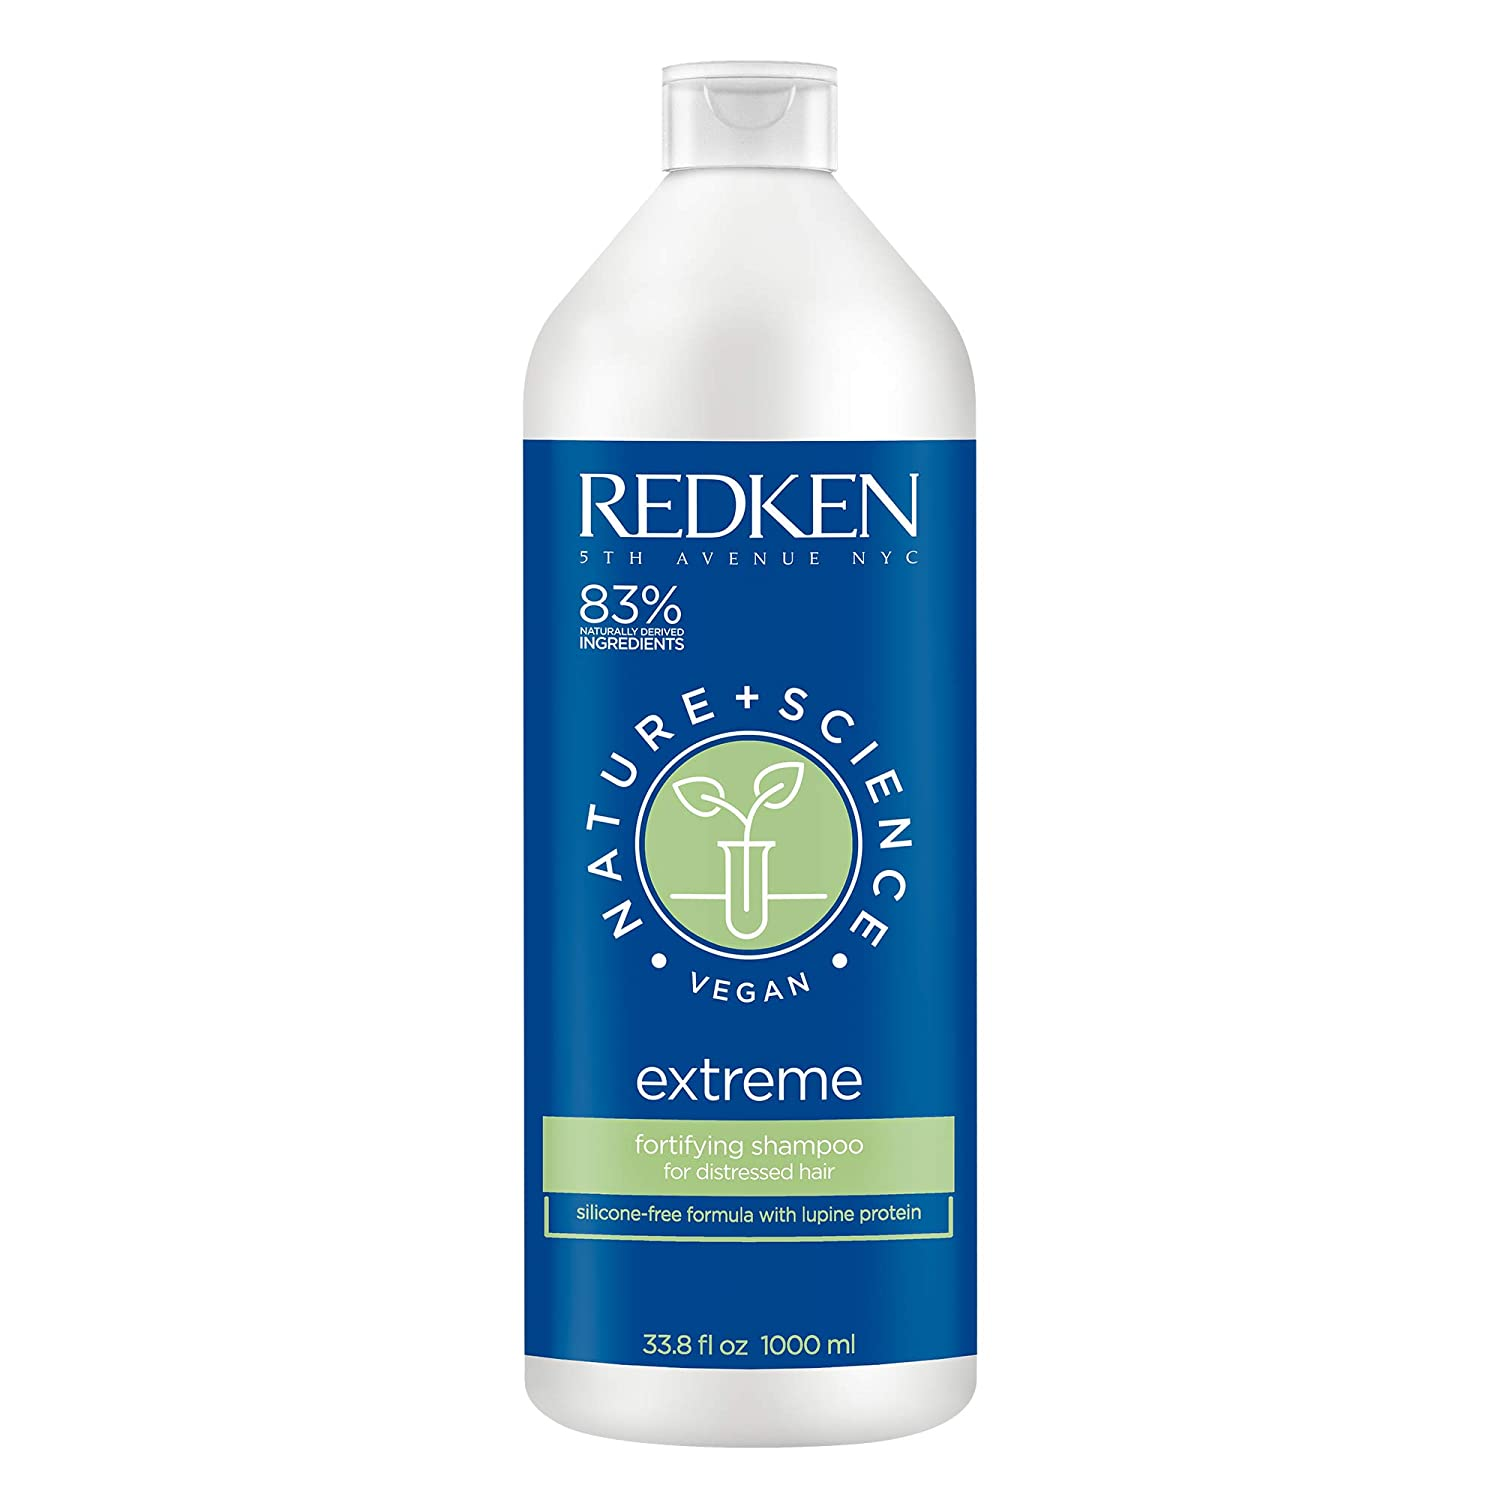 Redken Nature + Science Extreme Fortifying Shampoo | For Distressed Hair | Moisturizes & Strengthens To Prevent Split Ends | Infused With Proteins | Vegan